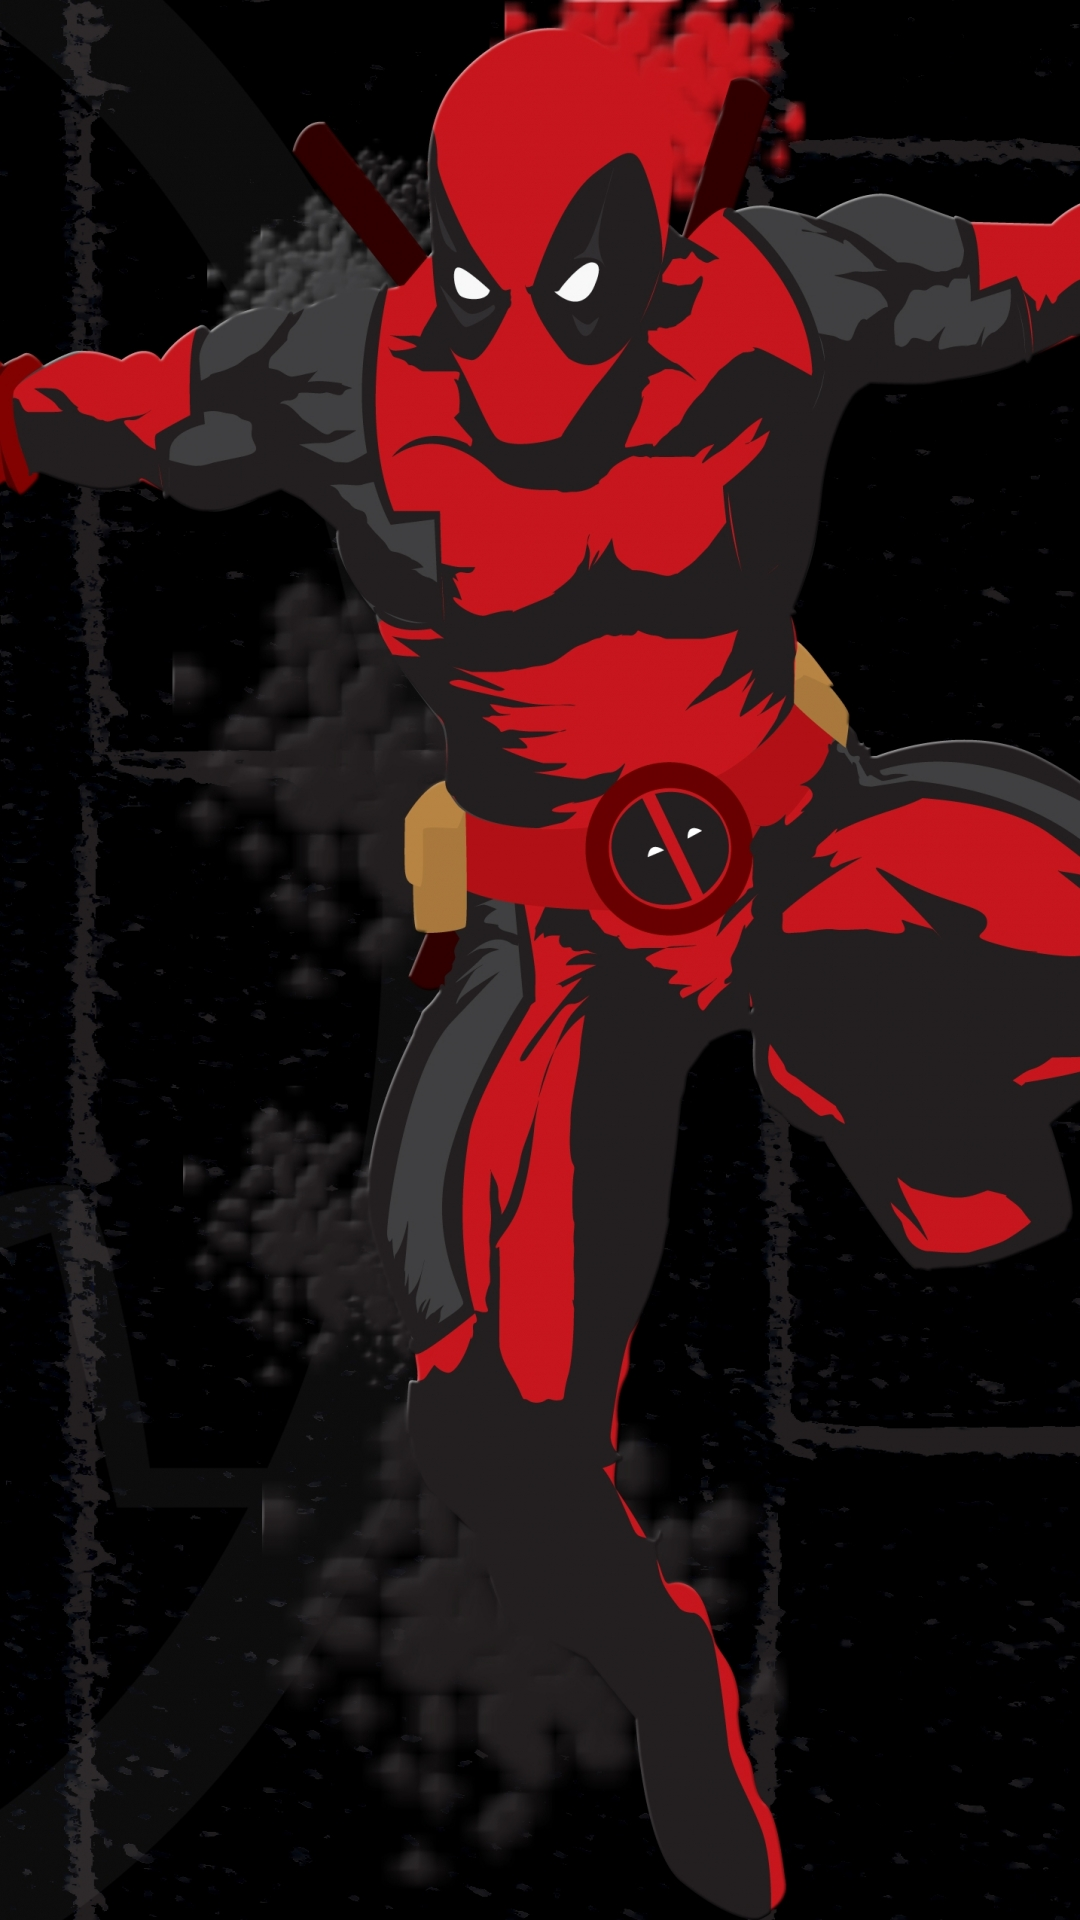 Deadpool iPhone Wallpapers 76 Wallpapers \u2013 HD Wallpapers